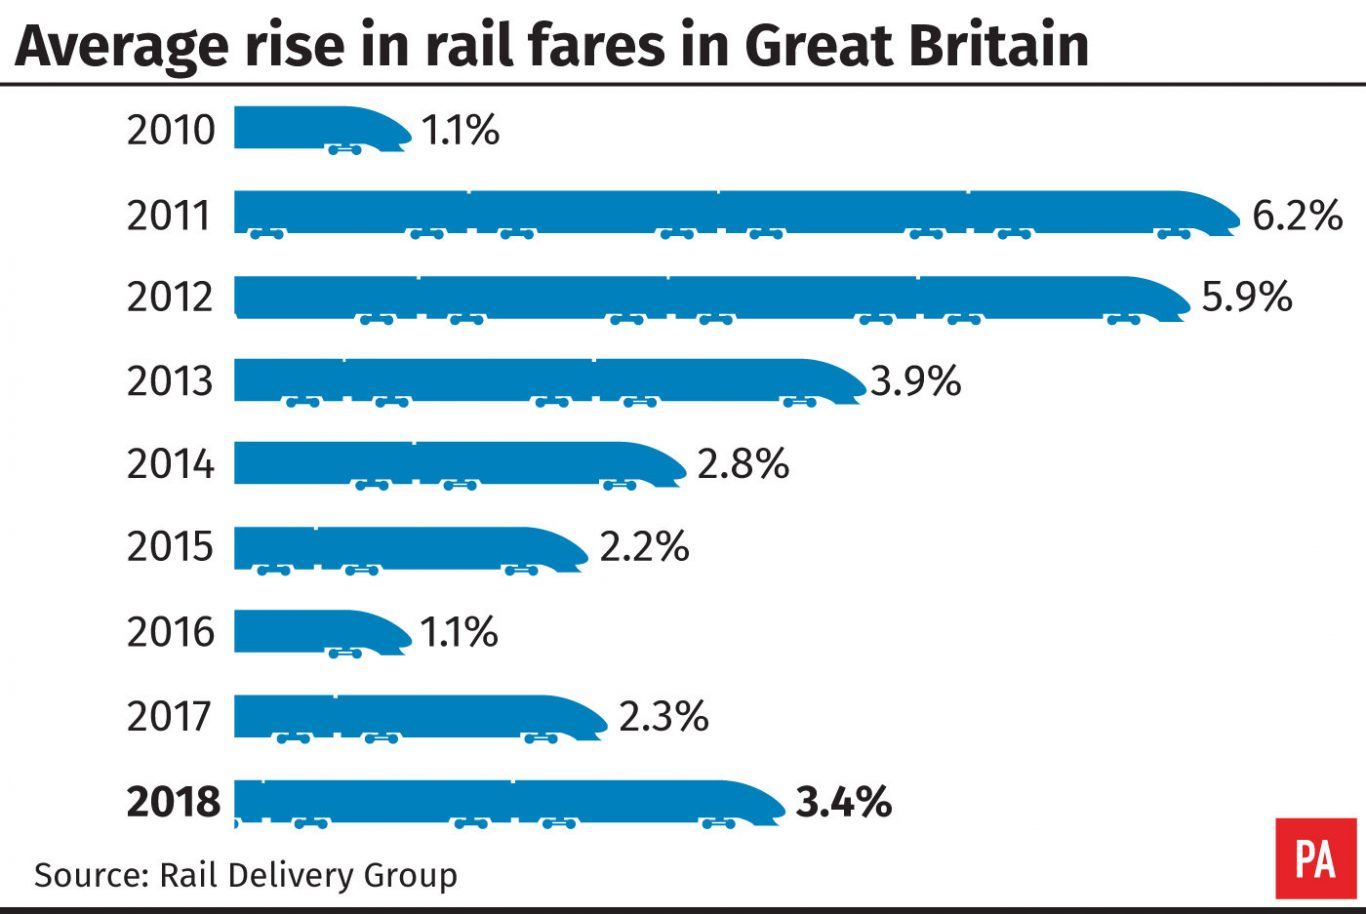 Average rise in rail fares in Great Britain.